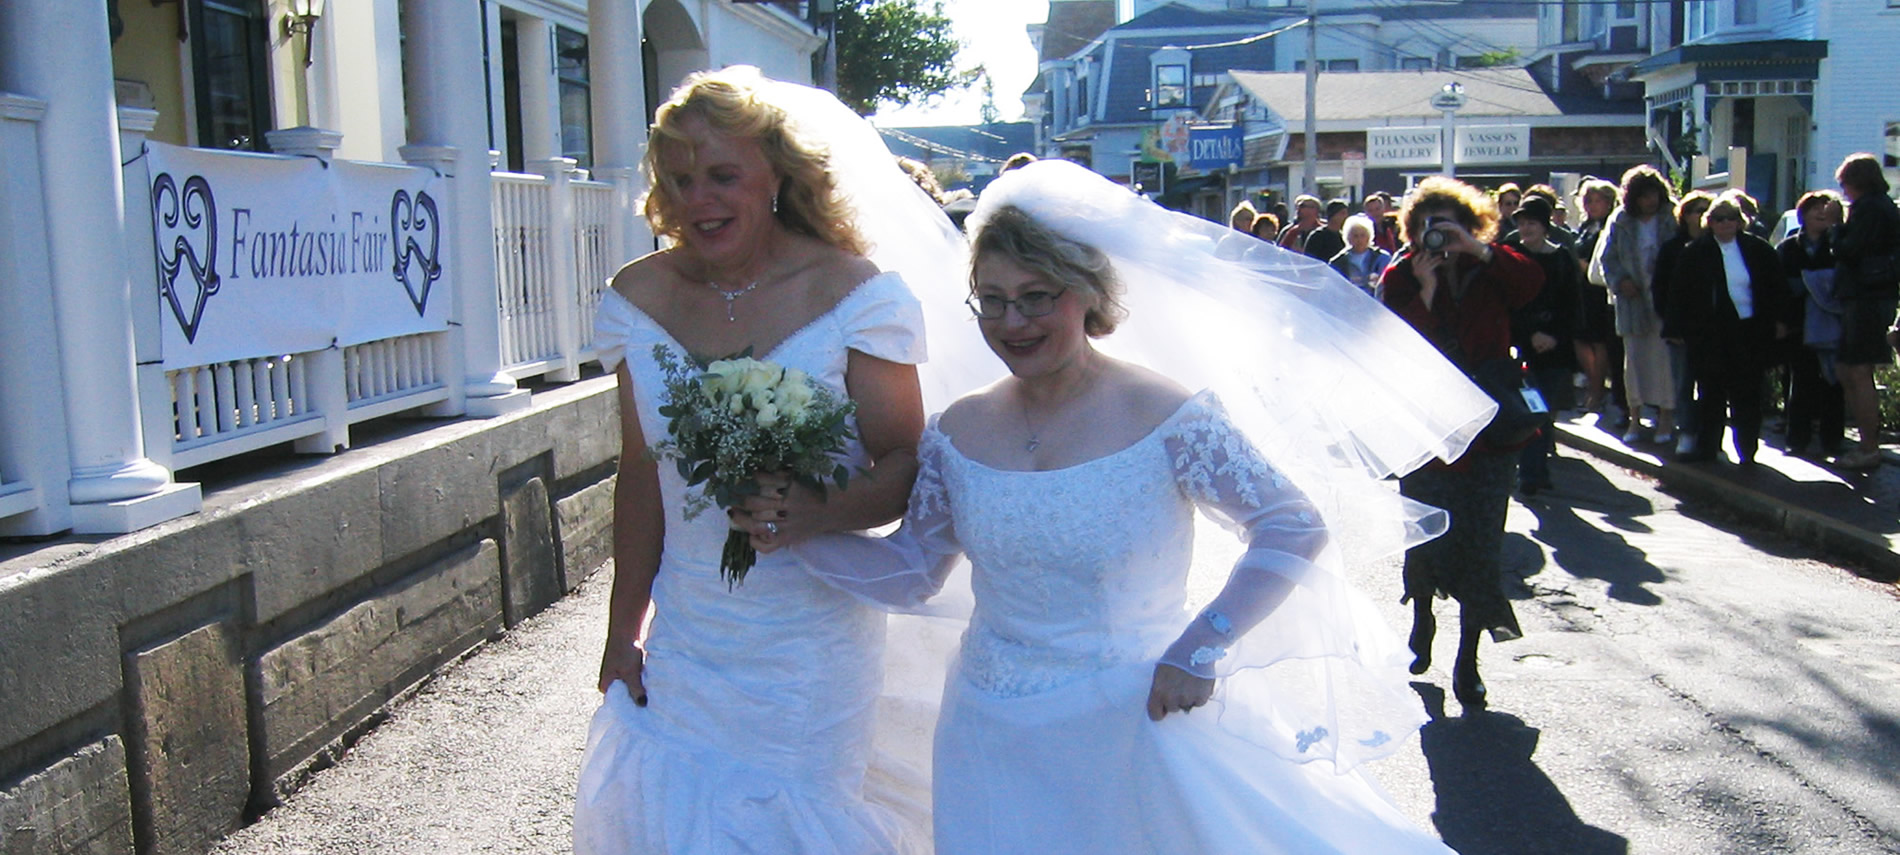 Robyn and Audri In White Wedding gowns walking down the main street with people lining the street